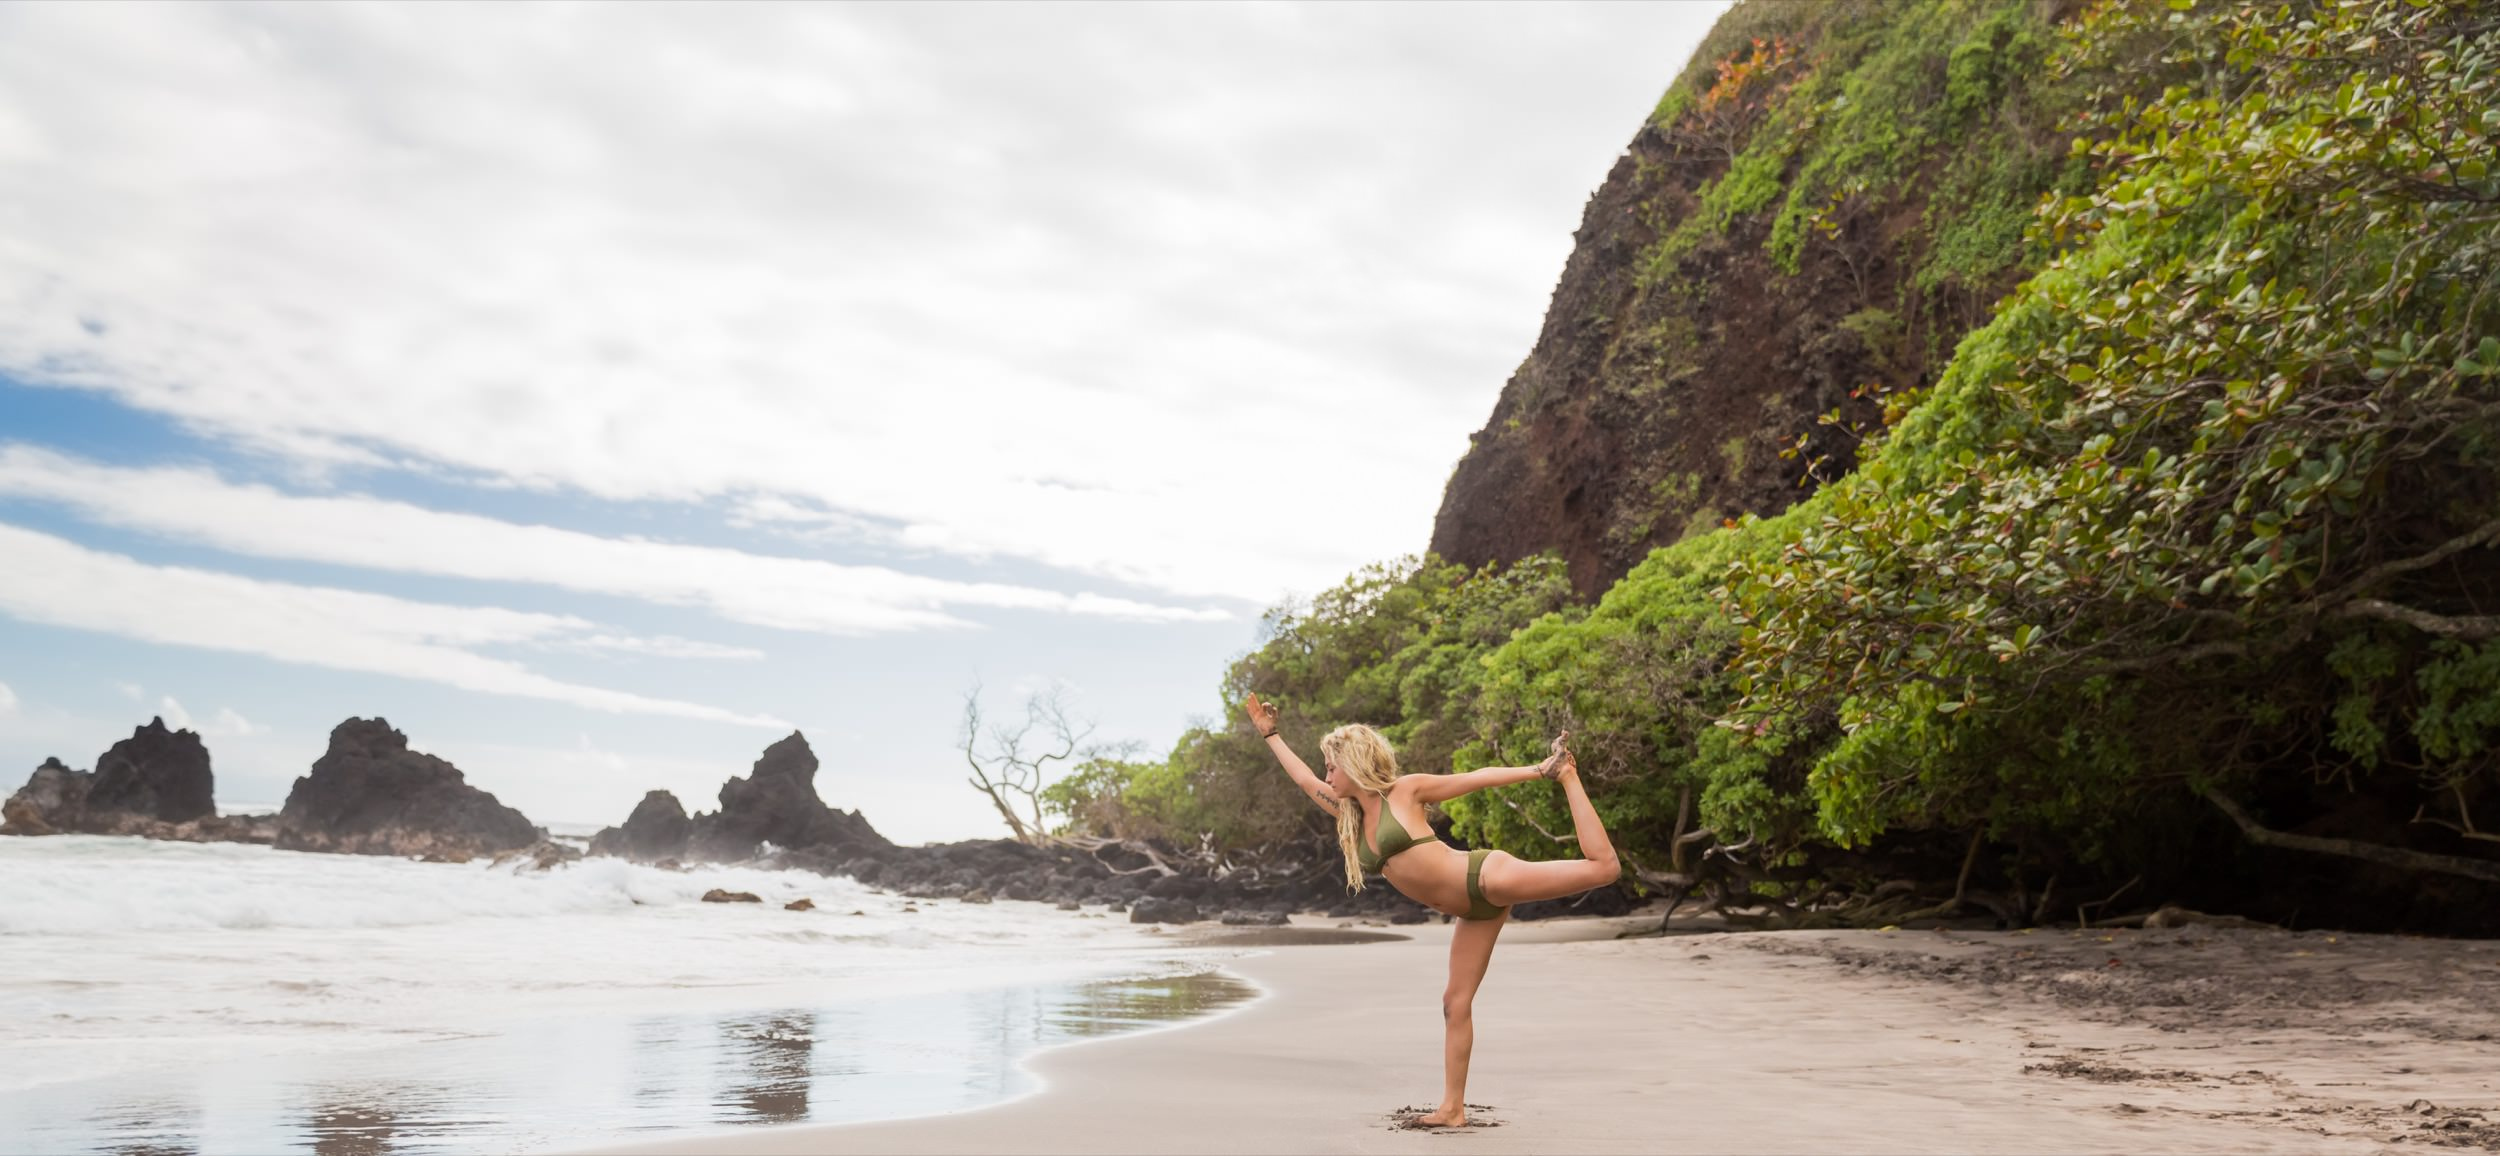 011_050_011015_Hana-Maui-Yoga-Retreat_Nicole-Goddard-Photography_NMG_7394